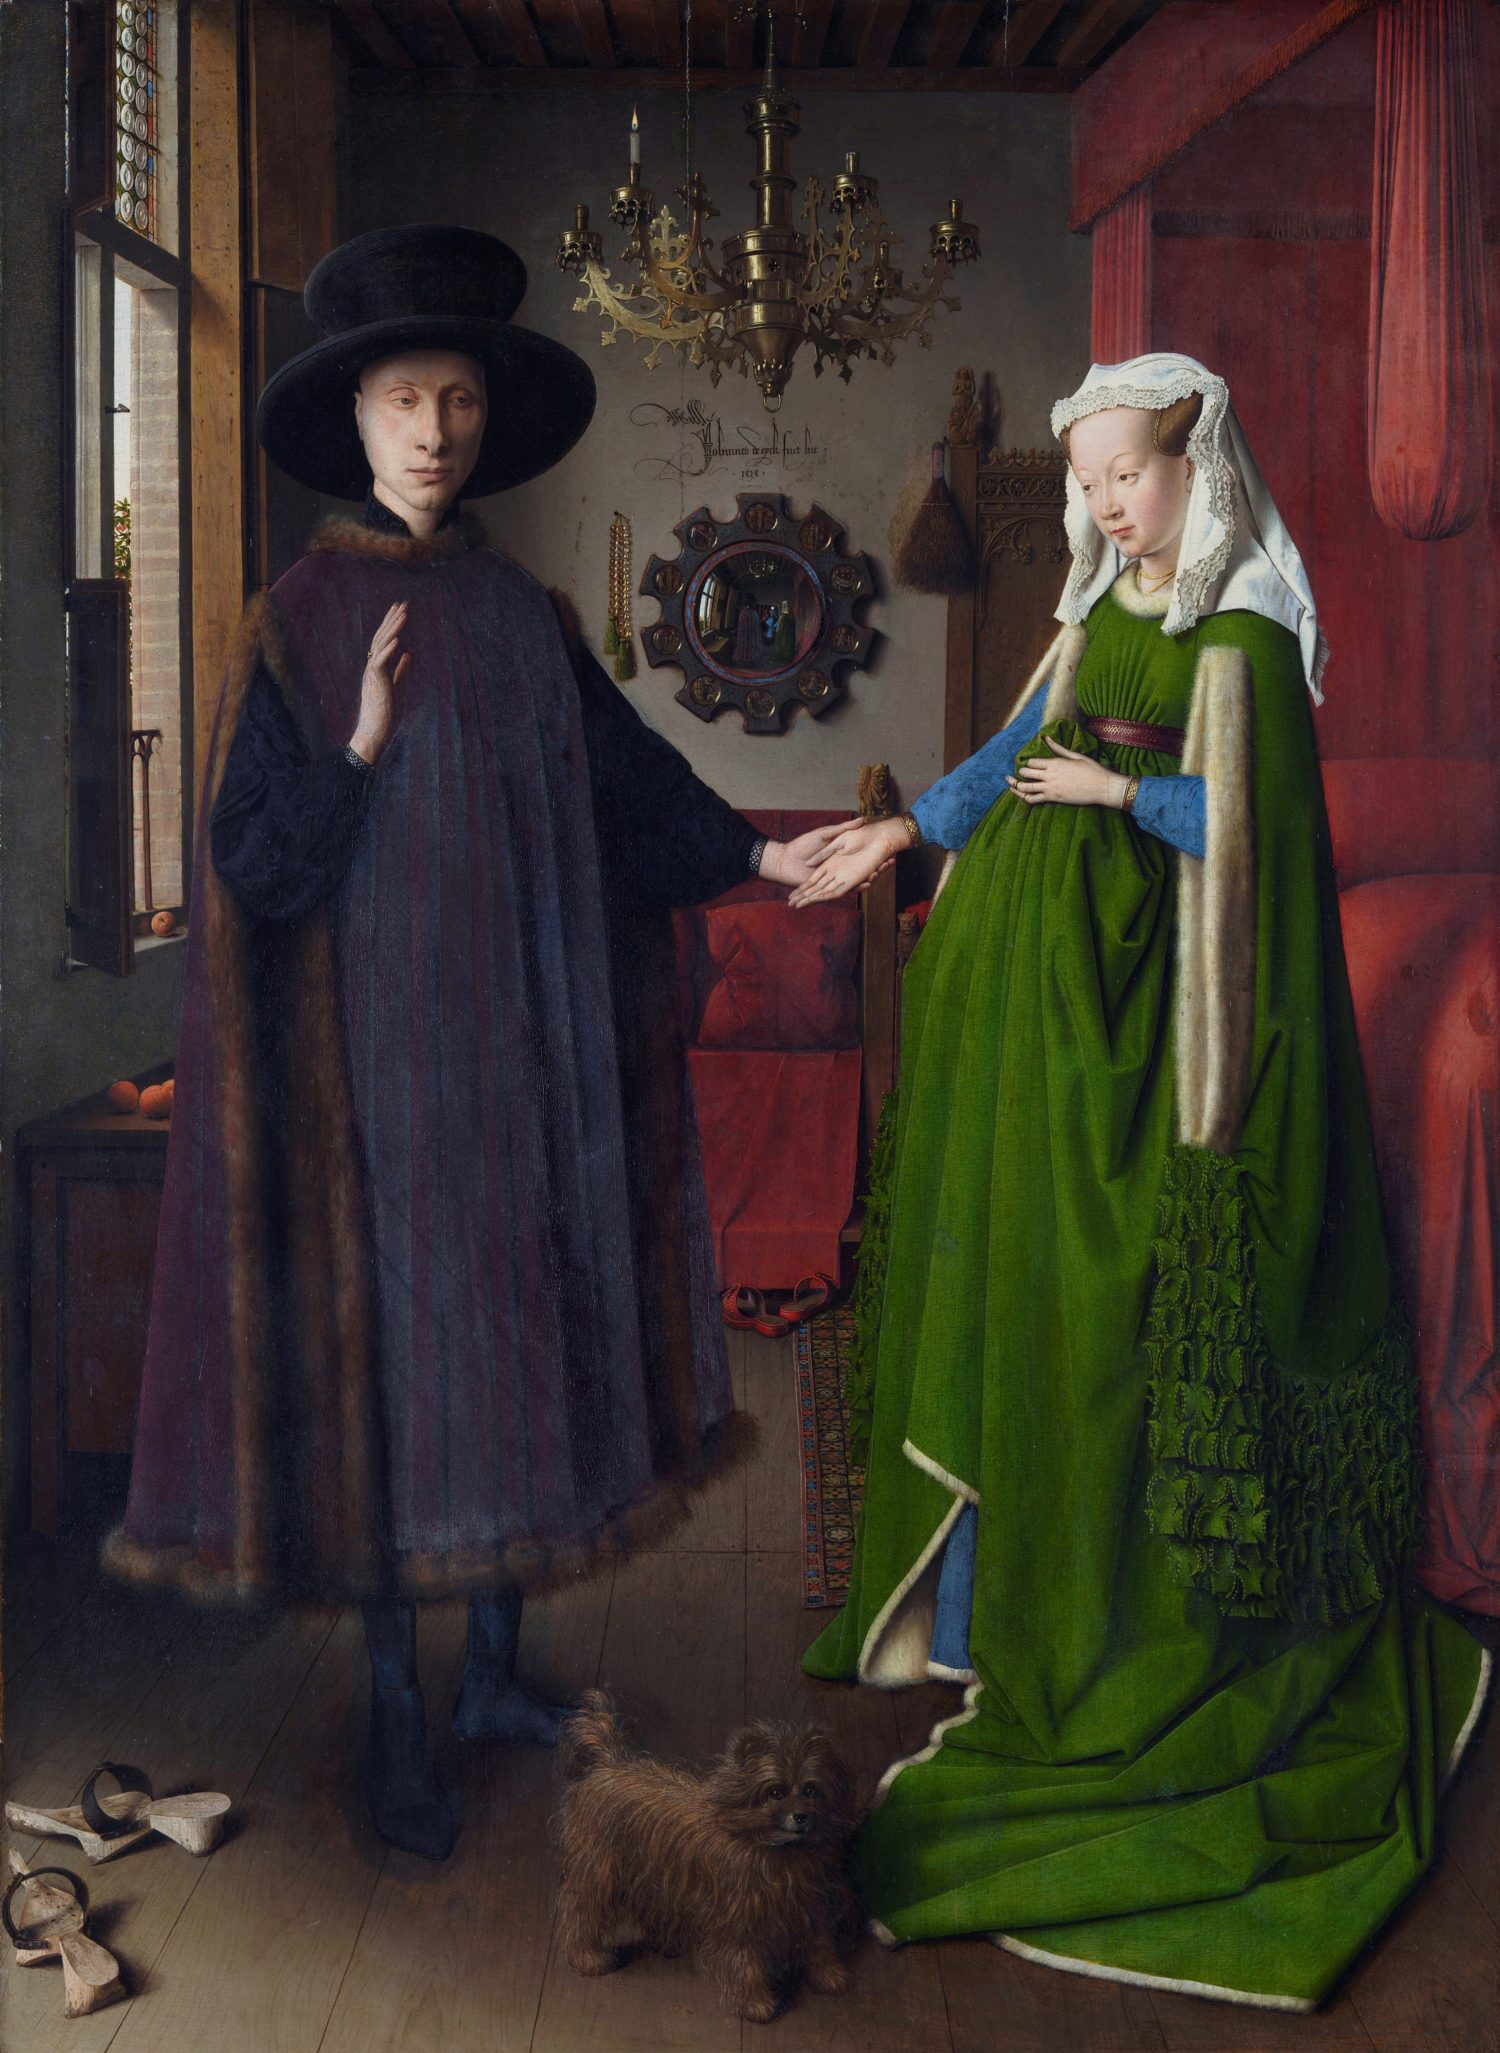 Arnolfini portrait by Jan Van Eyck